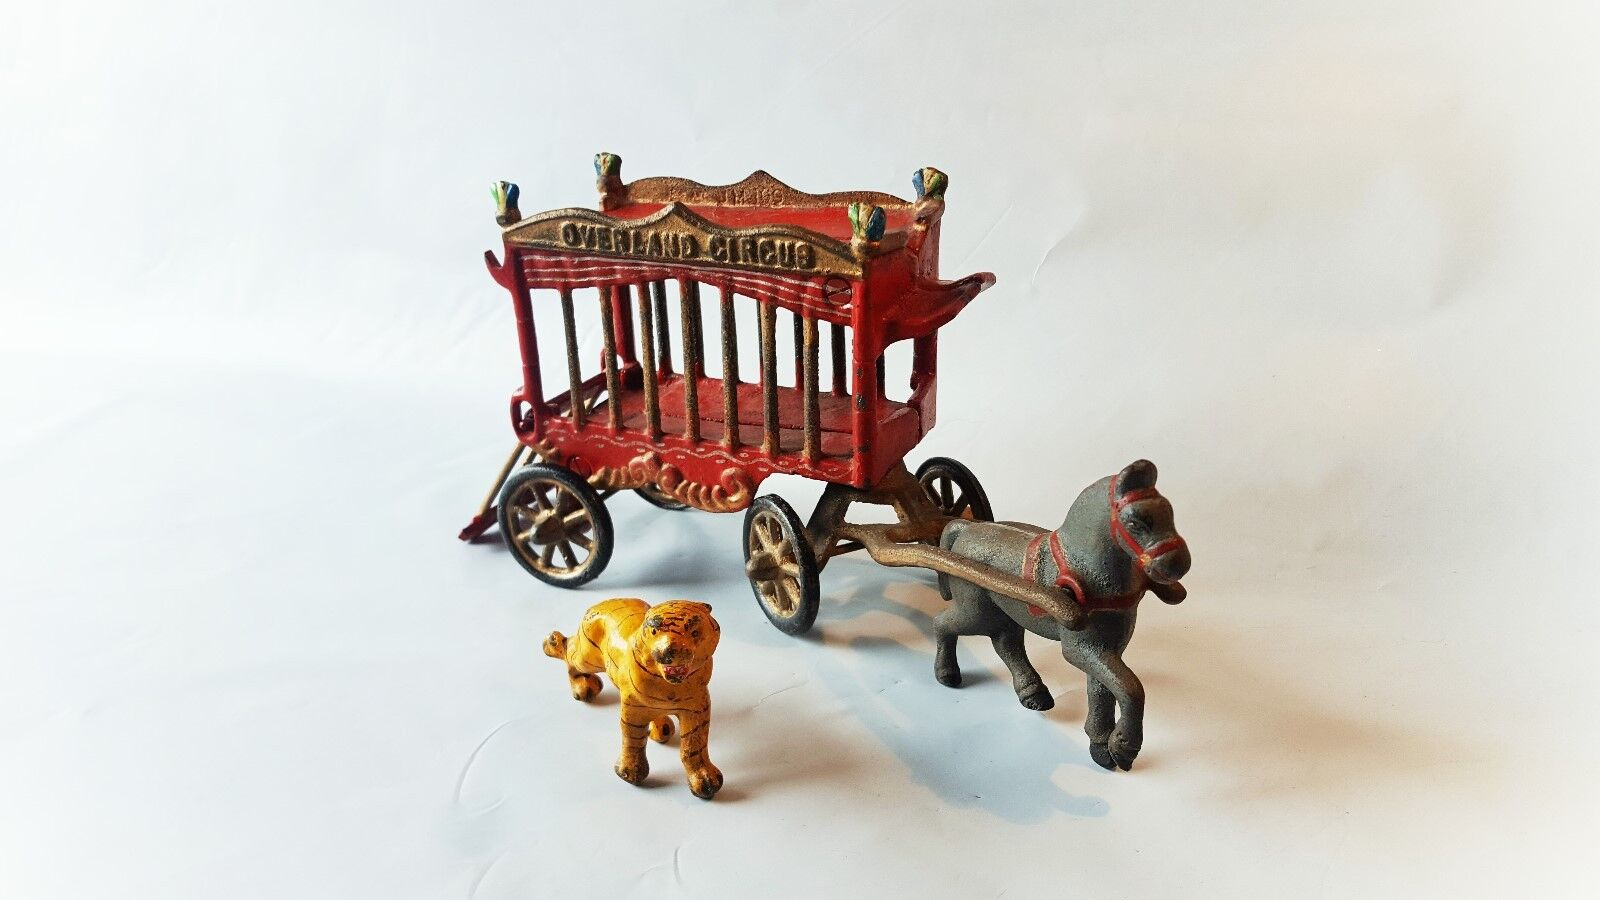 Vintage 1930's Kenton Cast Iron OVERLAND CIRCUS Cage Wagon w Tiger